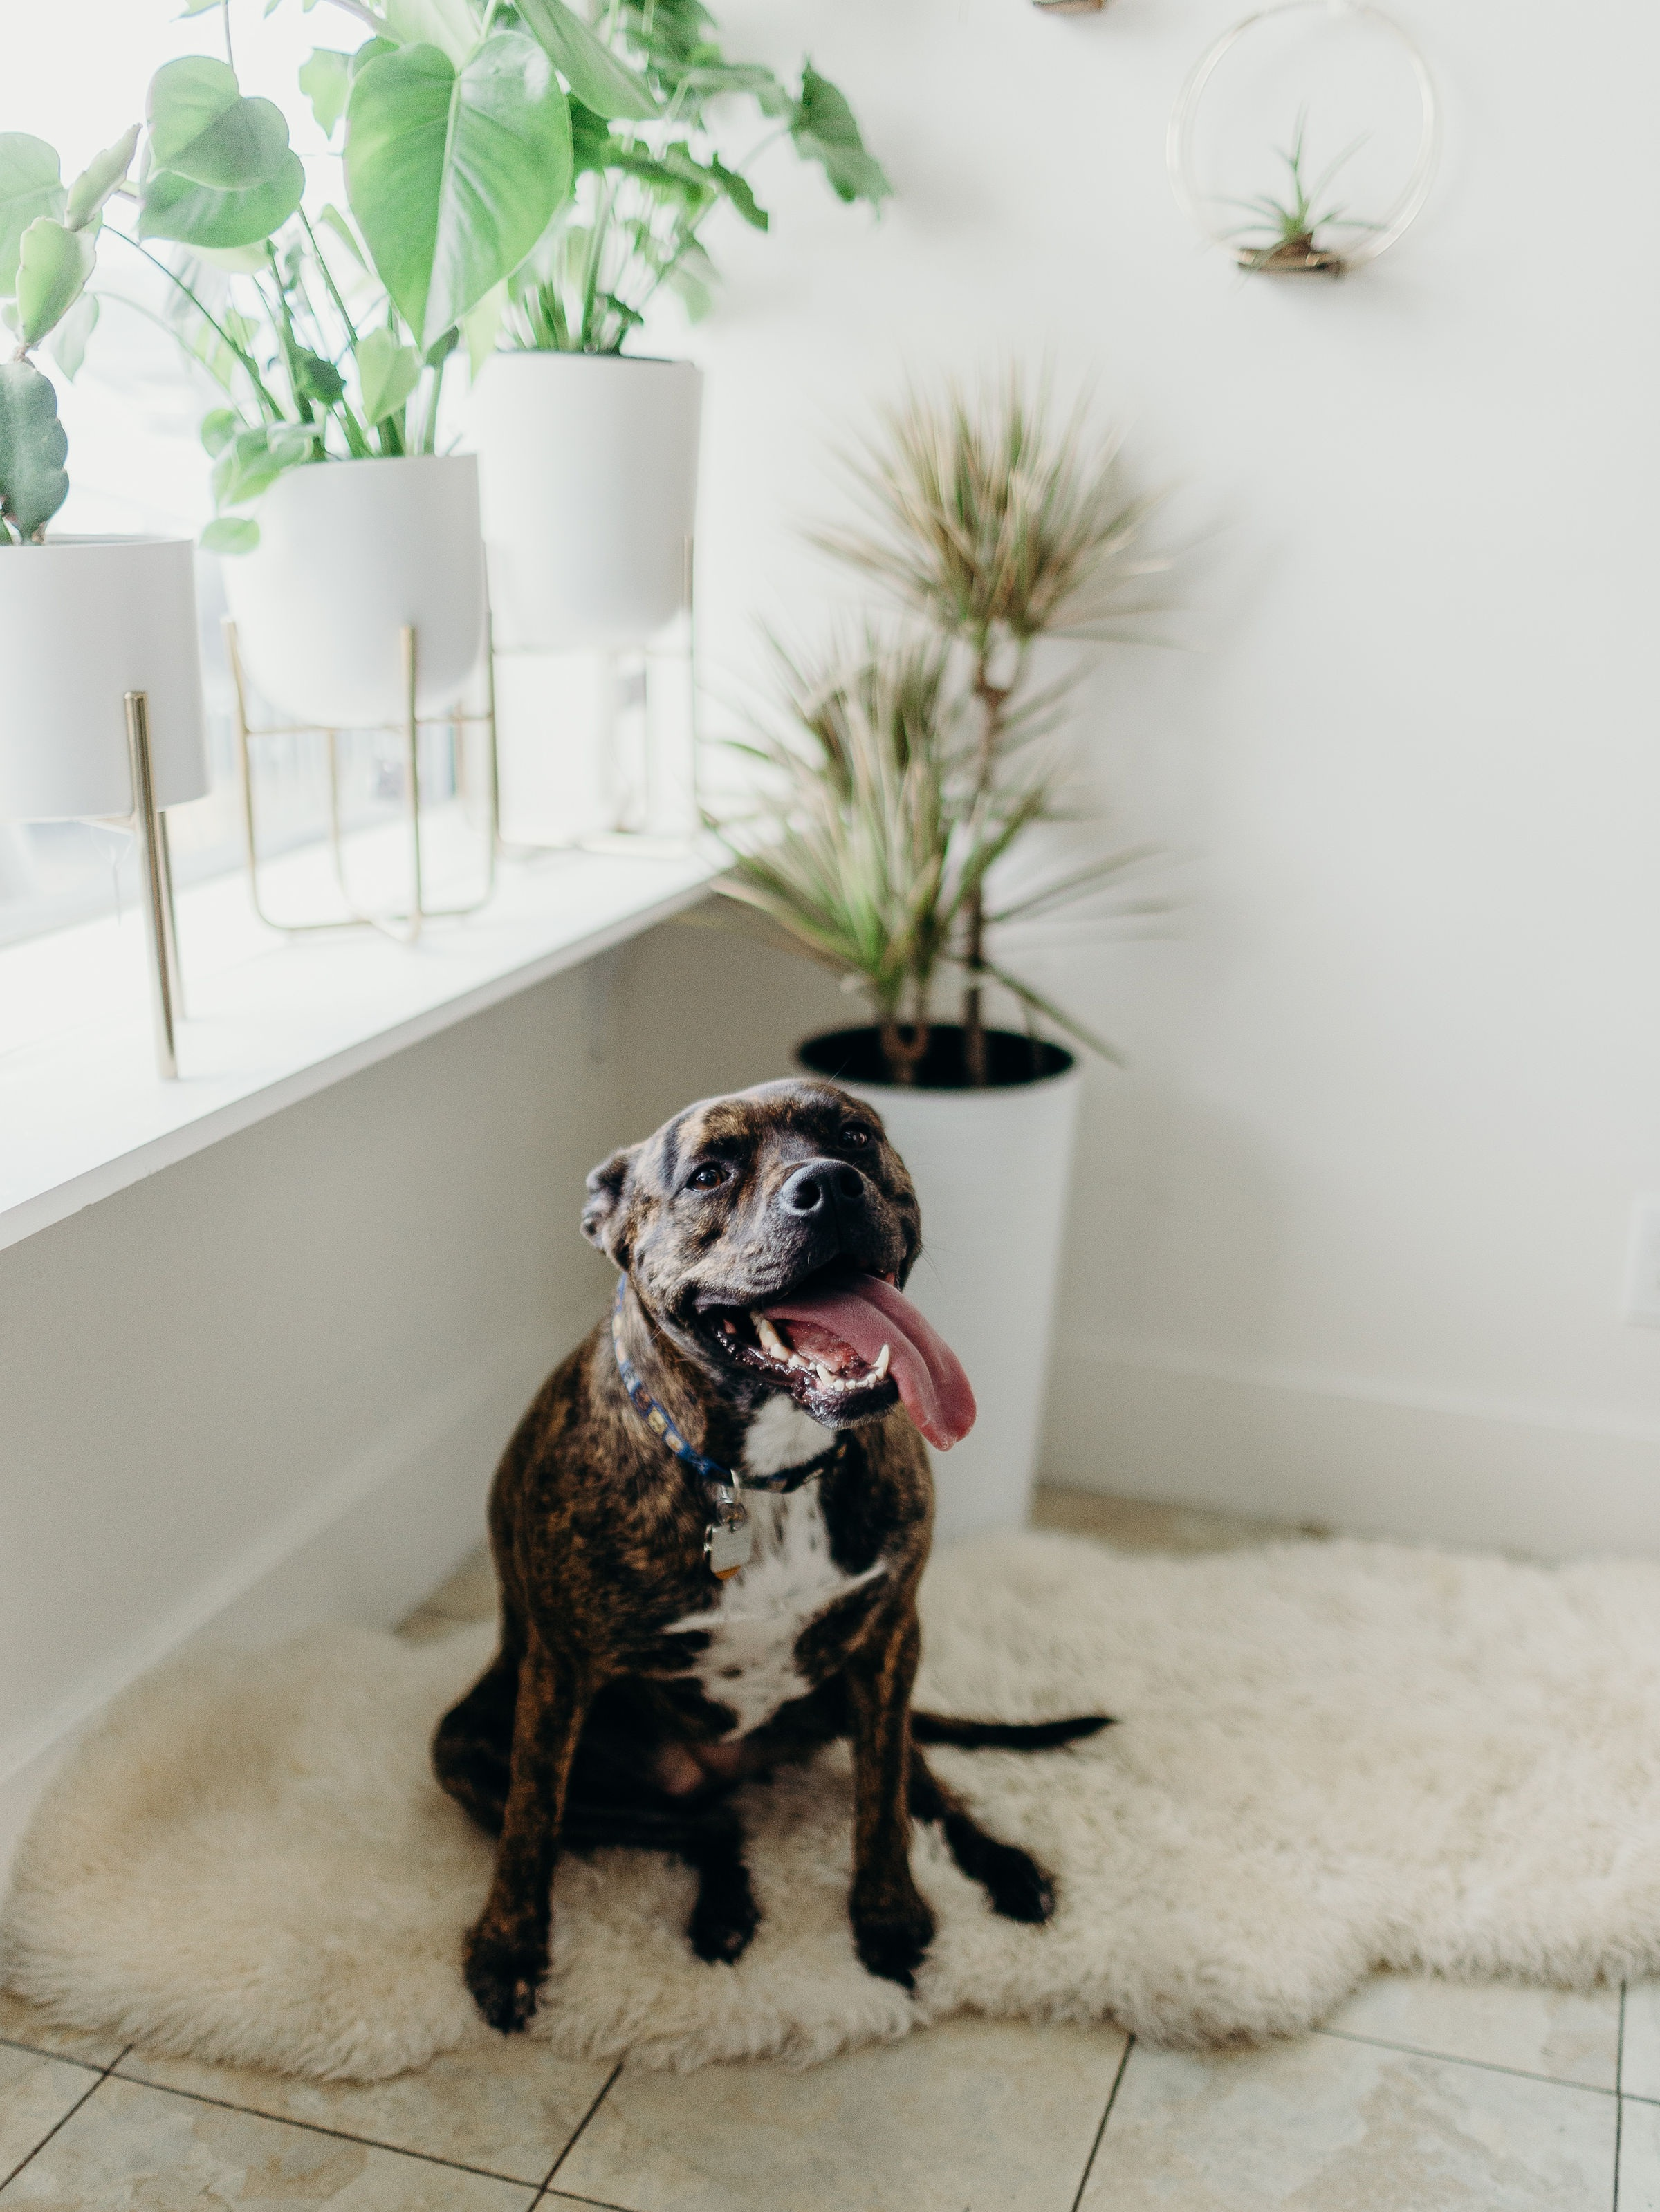 """Ask a professional - But some plants can be toxic to curious pets. A question I get asked frequently is """"which plants are safe for my pet?"""" I posed the same question to University Place Veterinary Hospital who gave this response. """"Thanks for looking out for the pets! Here's some good websites that are trustworthy."""""""